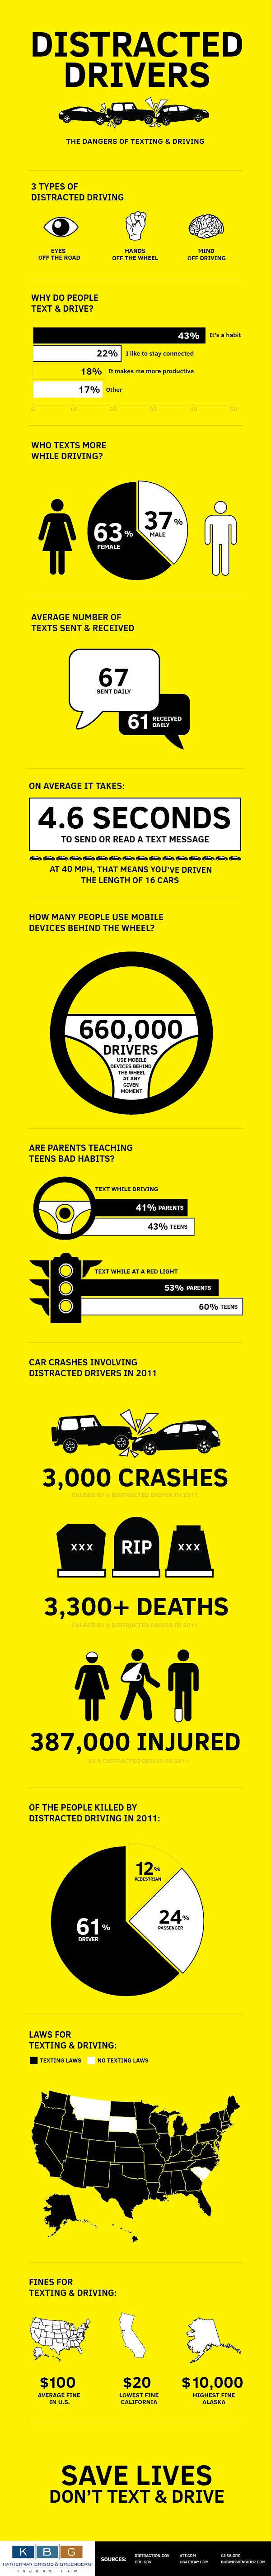 Distracted Driver The Danger Of Texting And Driving Infographic Dont Text Drive While Essays Essay